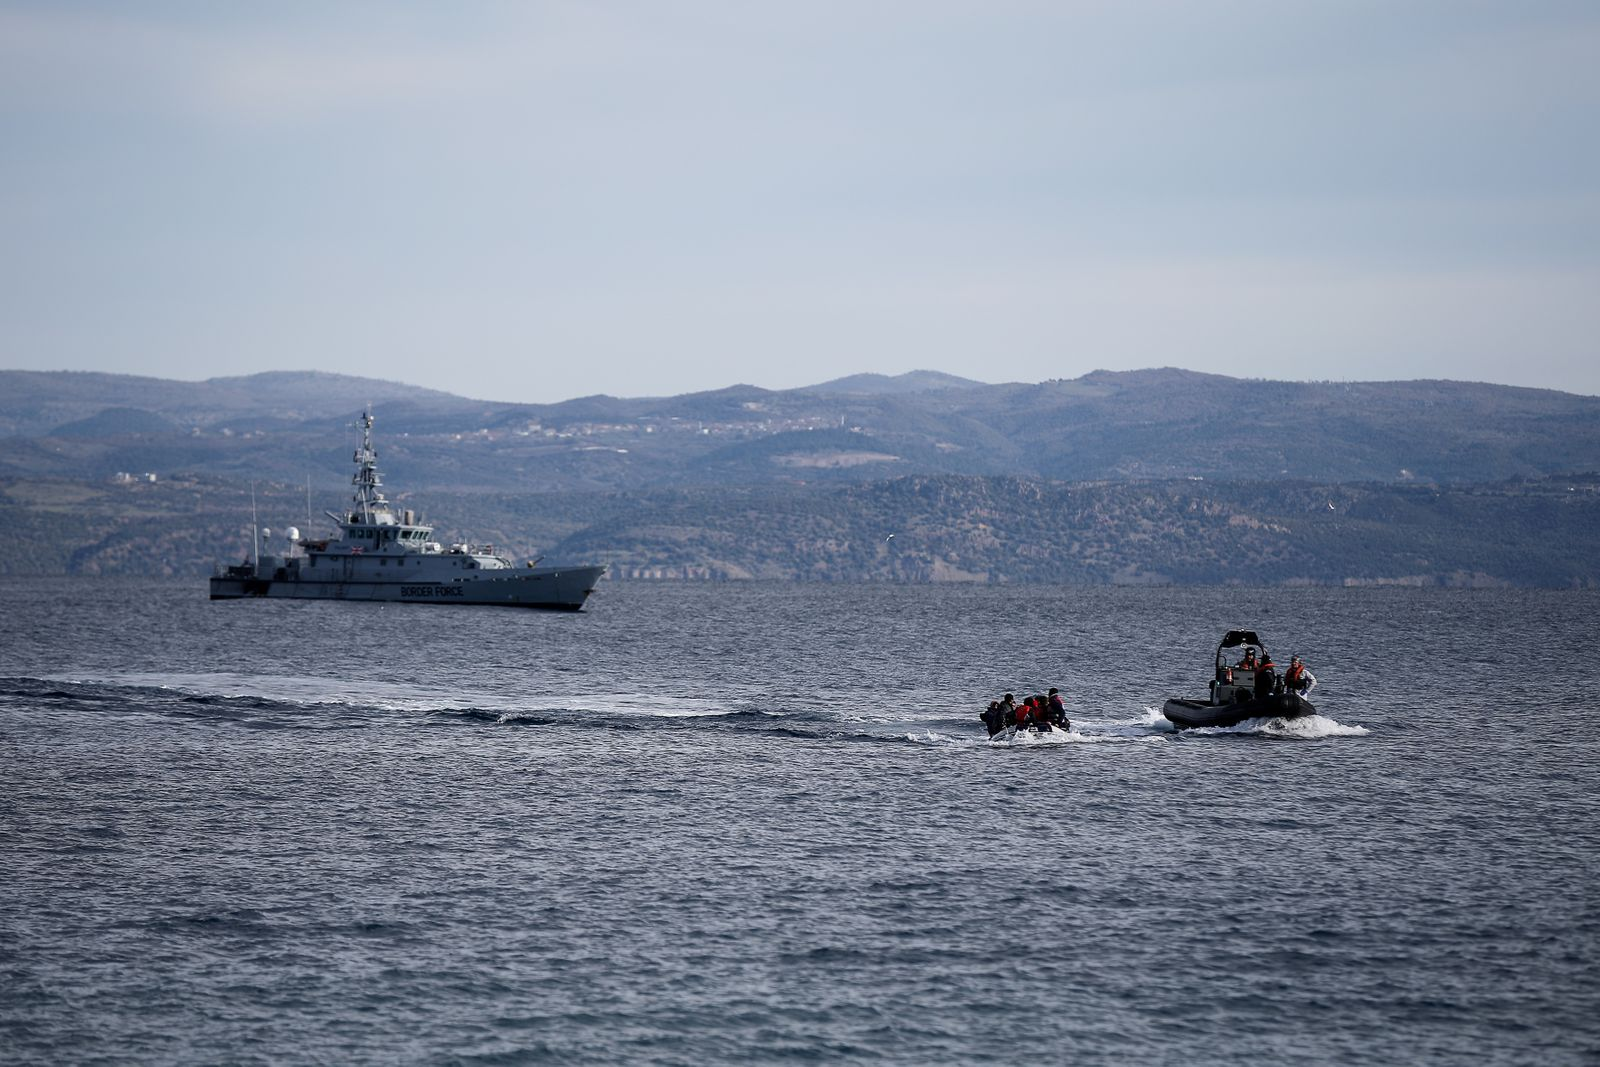 A rescue boat escorts a dinghy with migrants from Afghanistan as a Frontex vessel patrols in the background, on the island of Lesbos